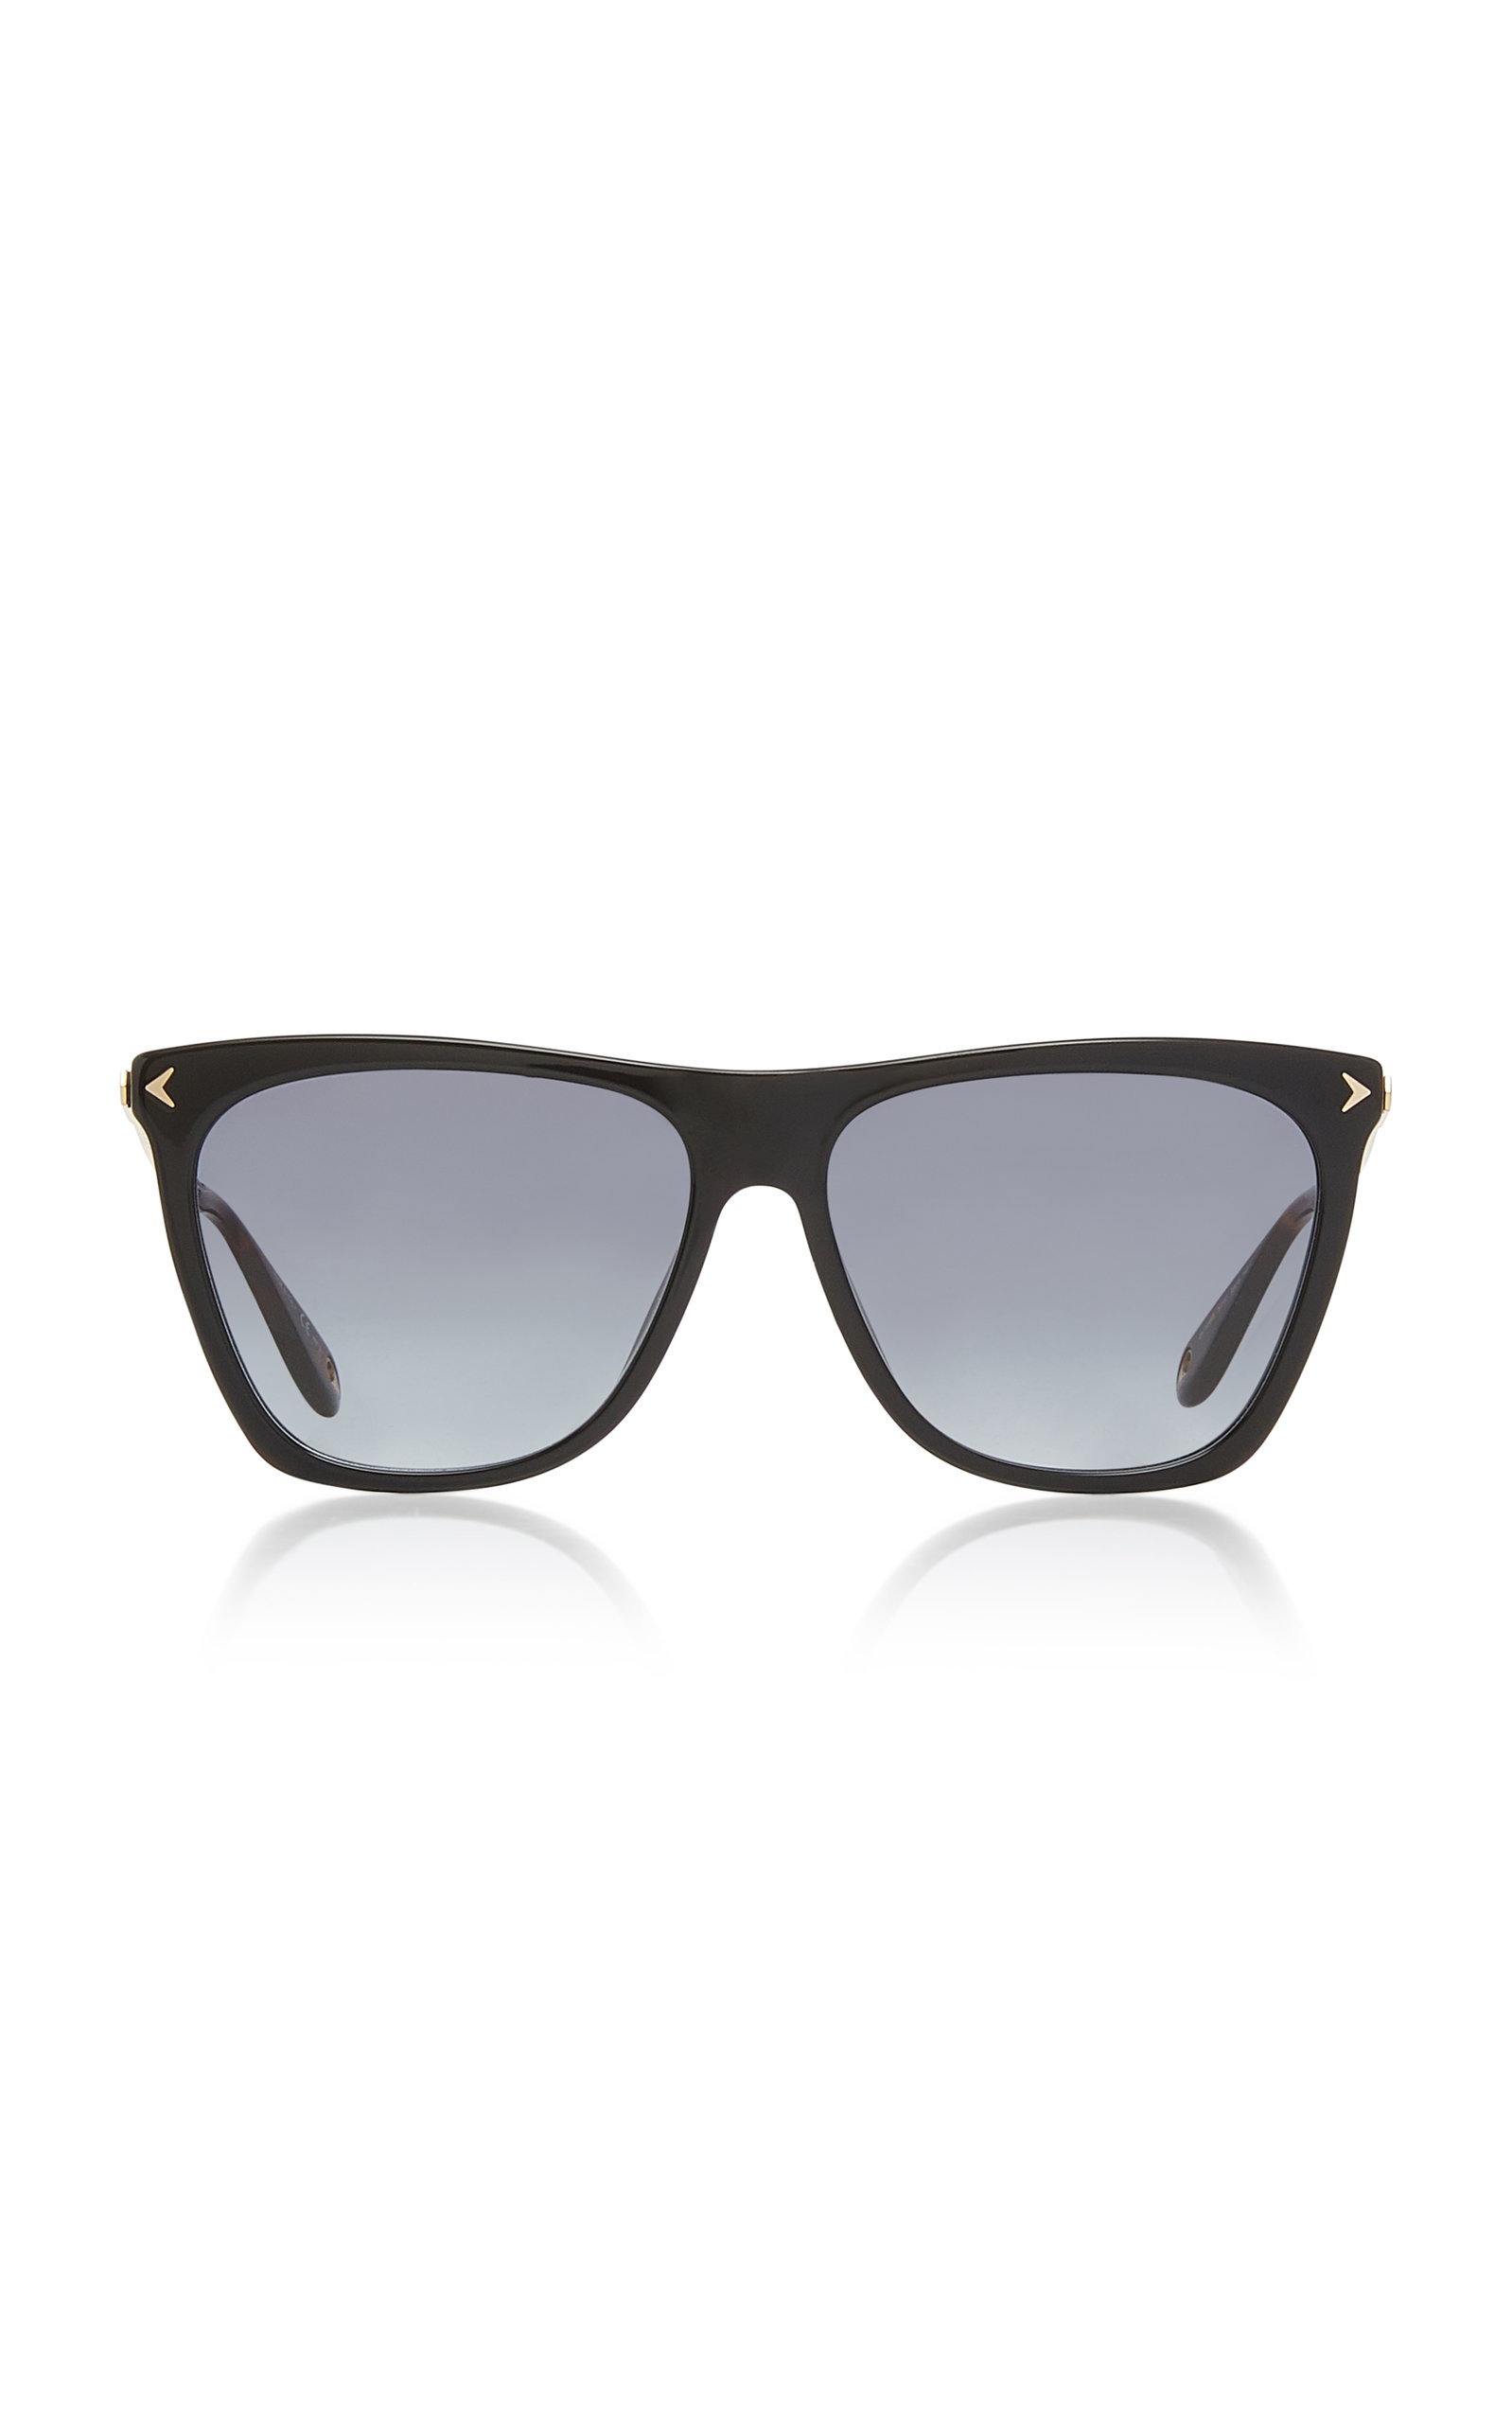 efce9f8da199 Oversized Square Sunglasses by Givenchy Sunglasses | Moda Operandi